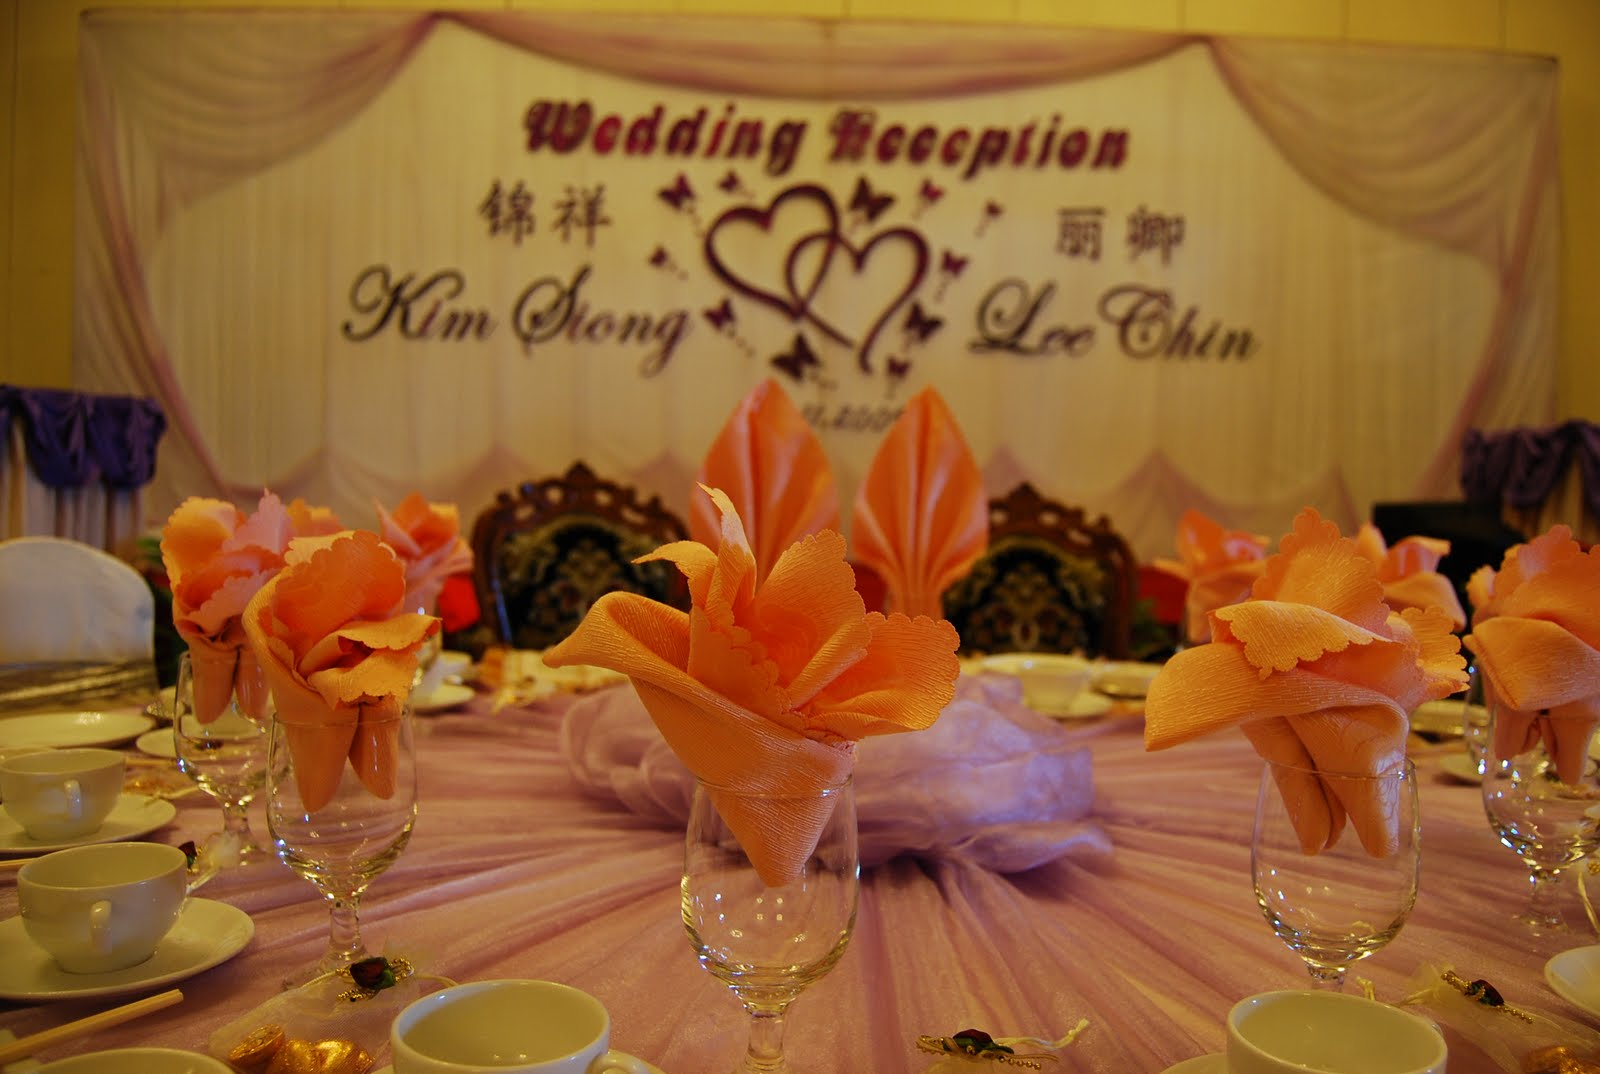 Wedding backdrop for Kim siong